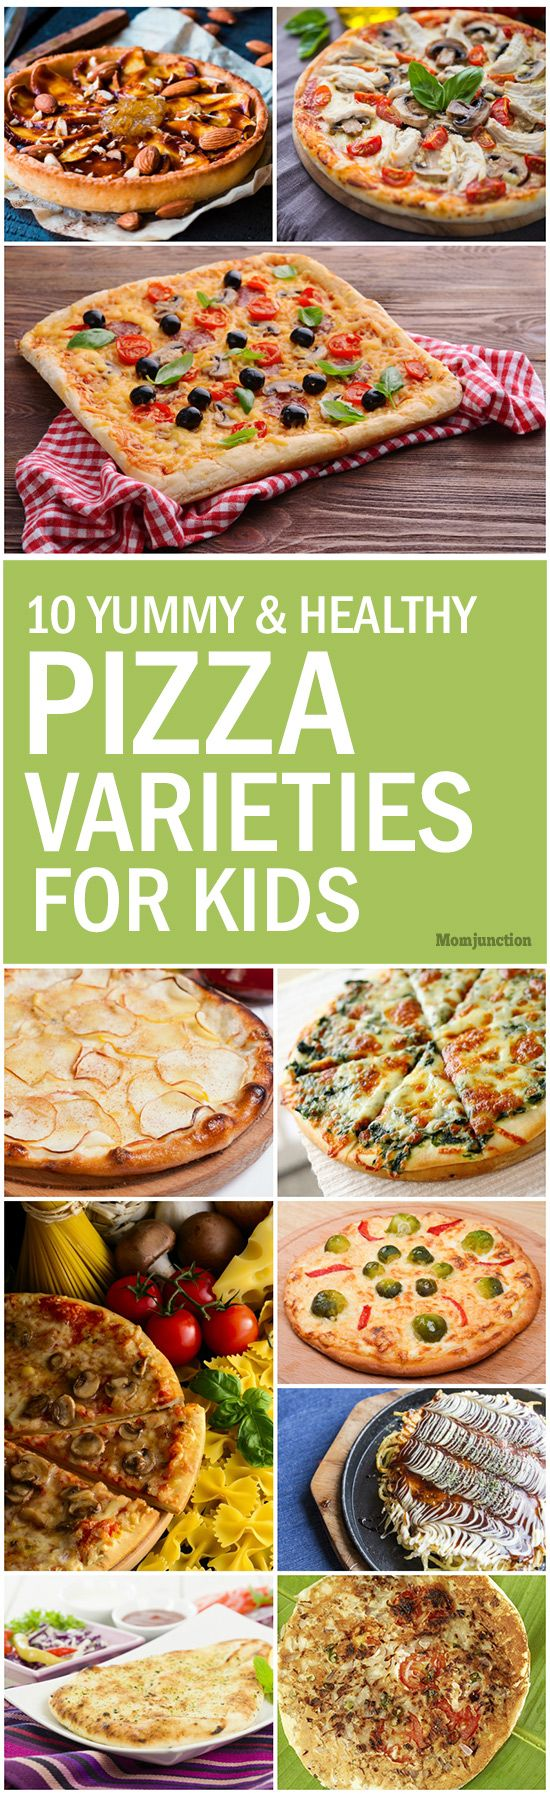 10 Yummy & Healthy Pizza Varieties For Your Kids: So here we present top 10 mouth-watering pizza recipes for your kids